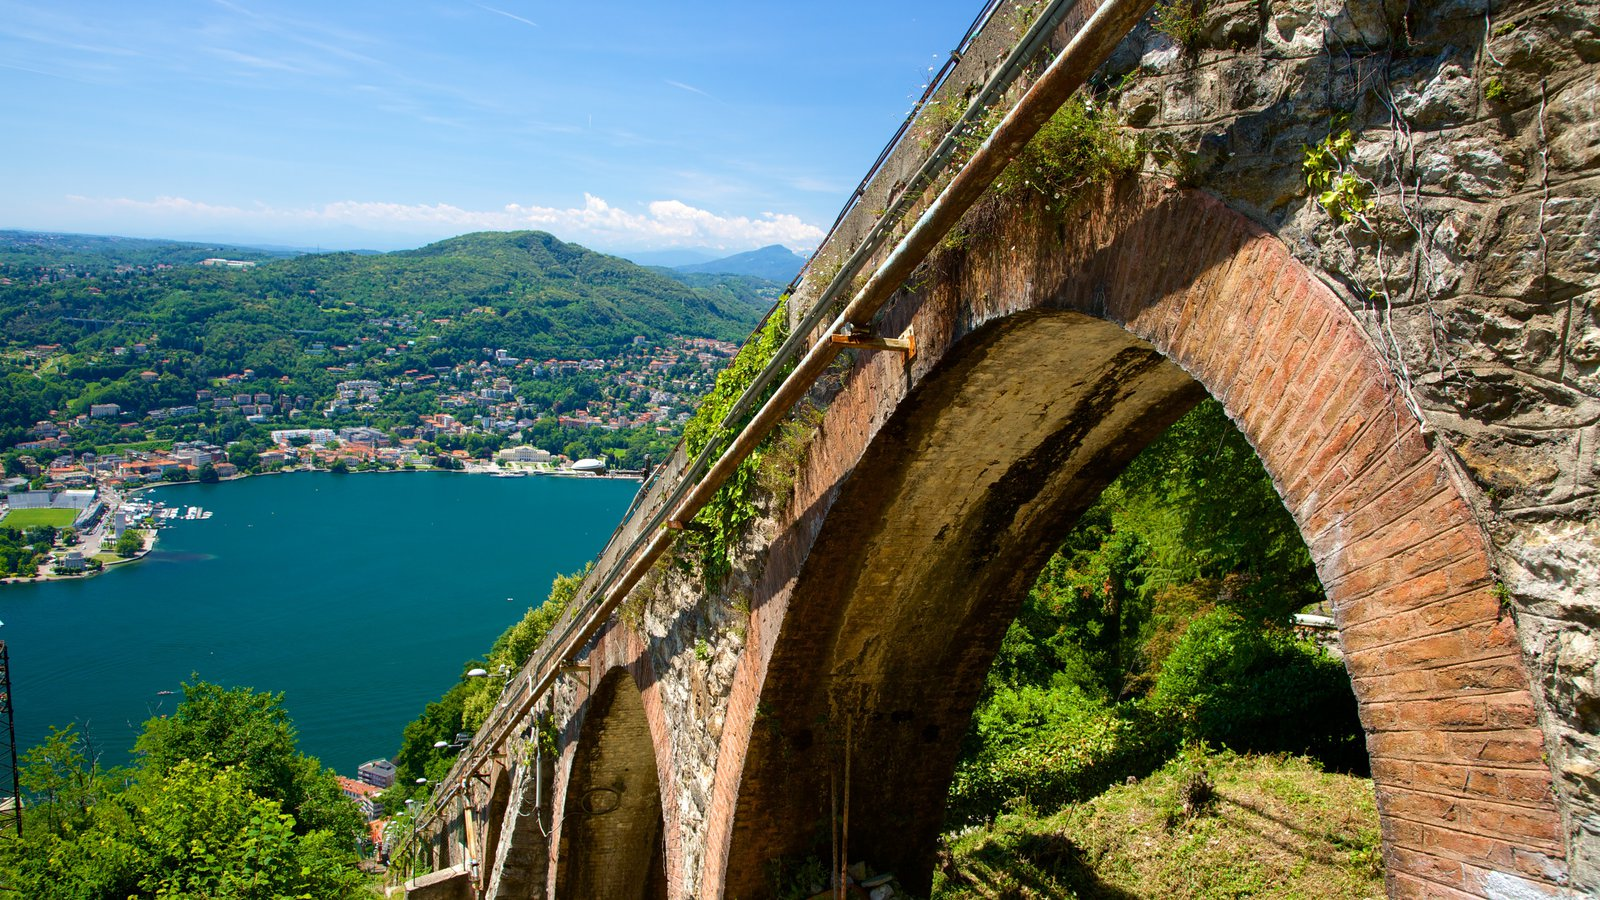 Como-Brunate Funicular which includes a bay or harbor and a bridge